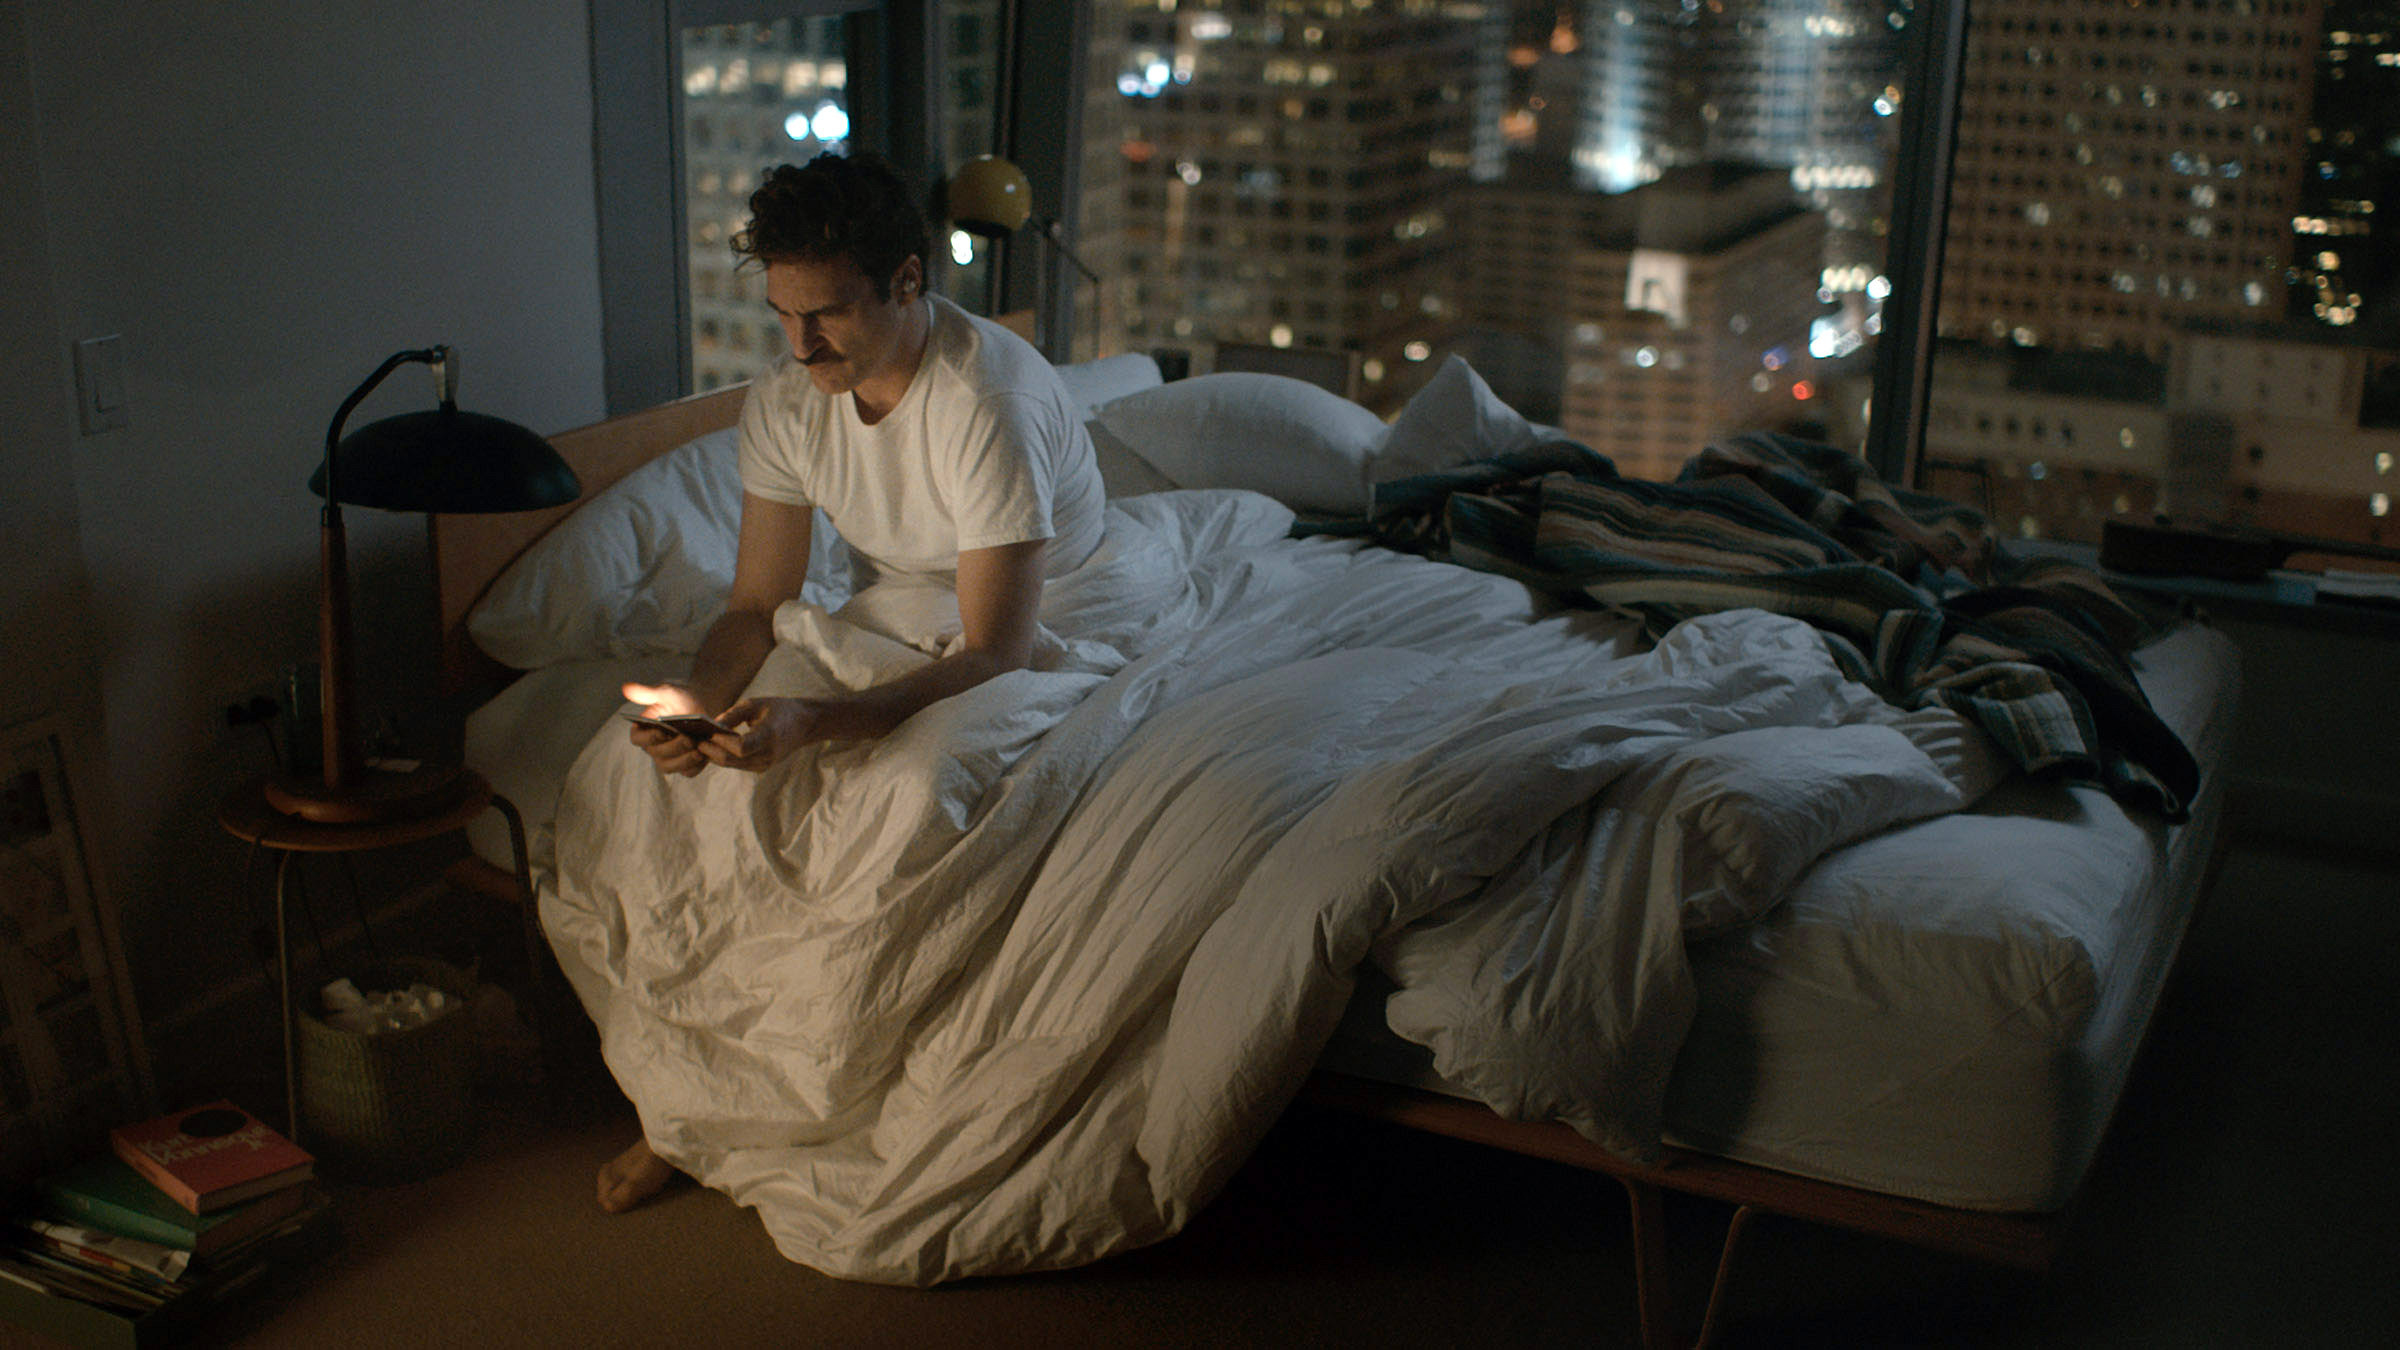 Theo on the phone in bed